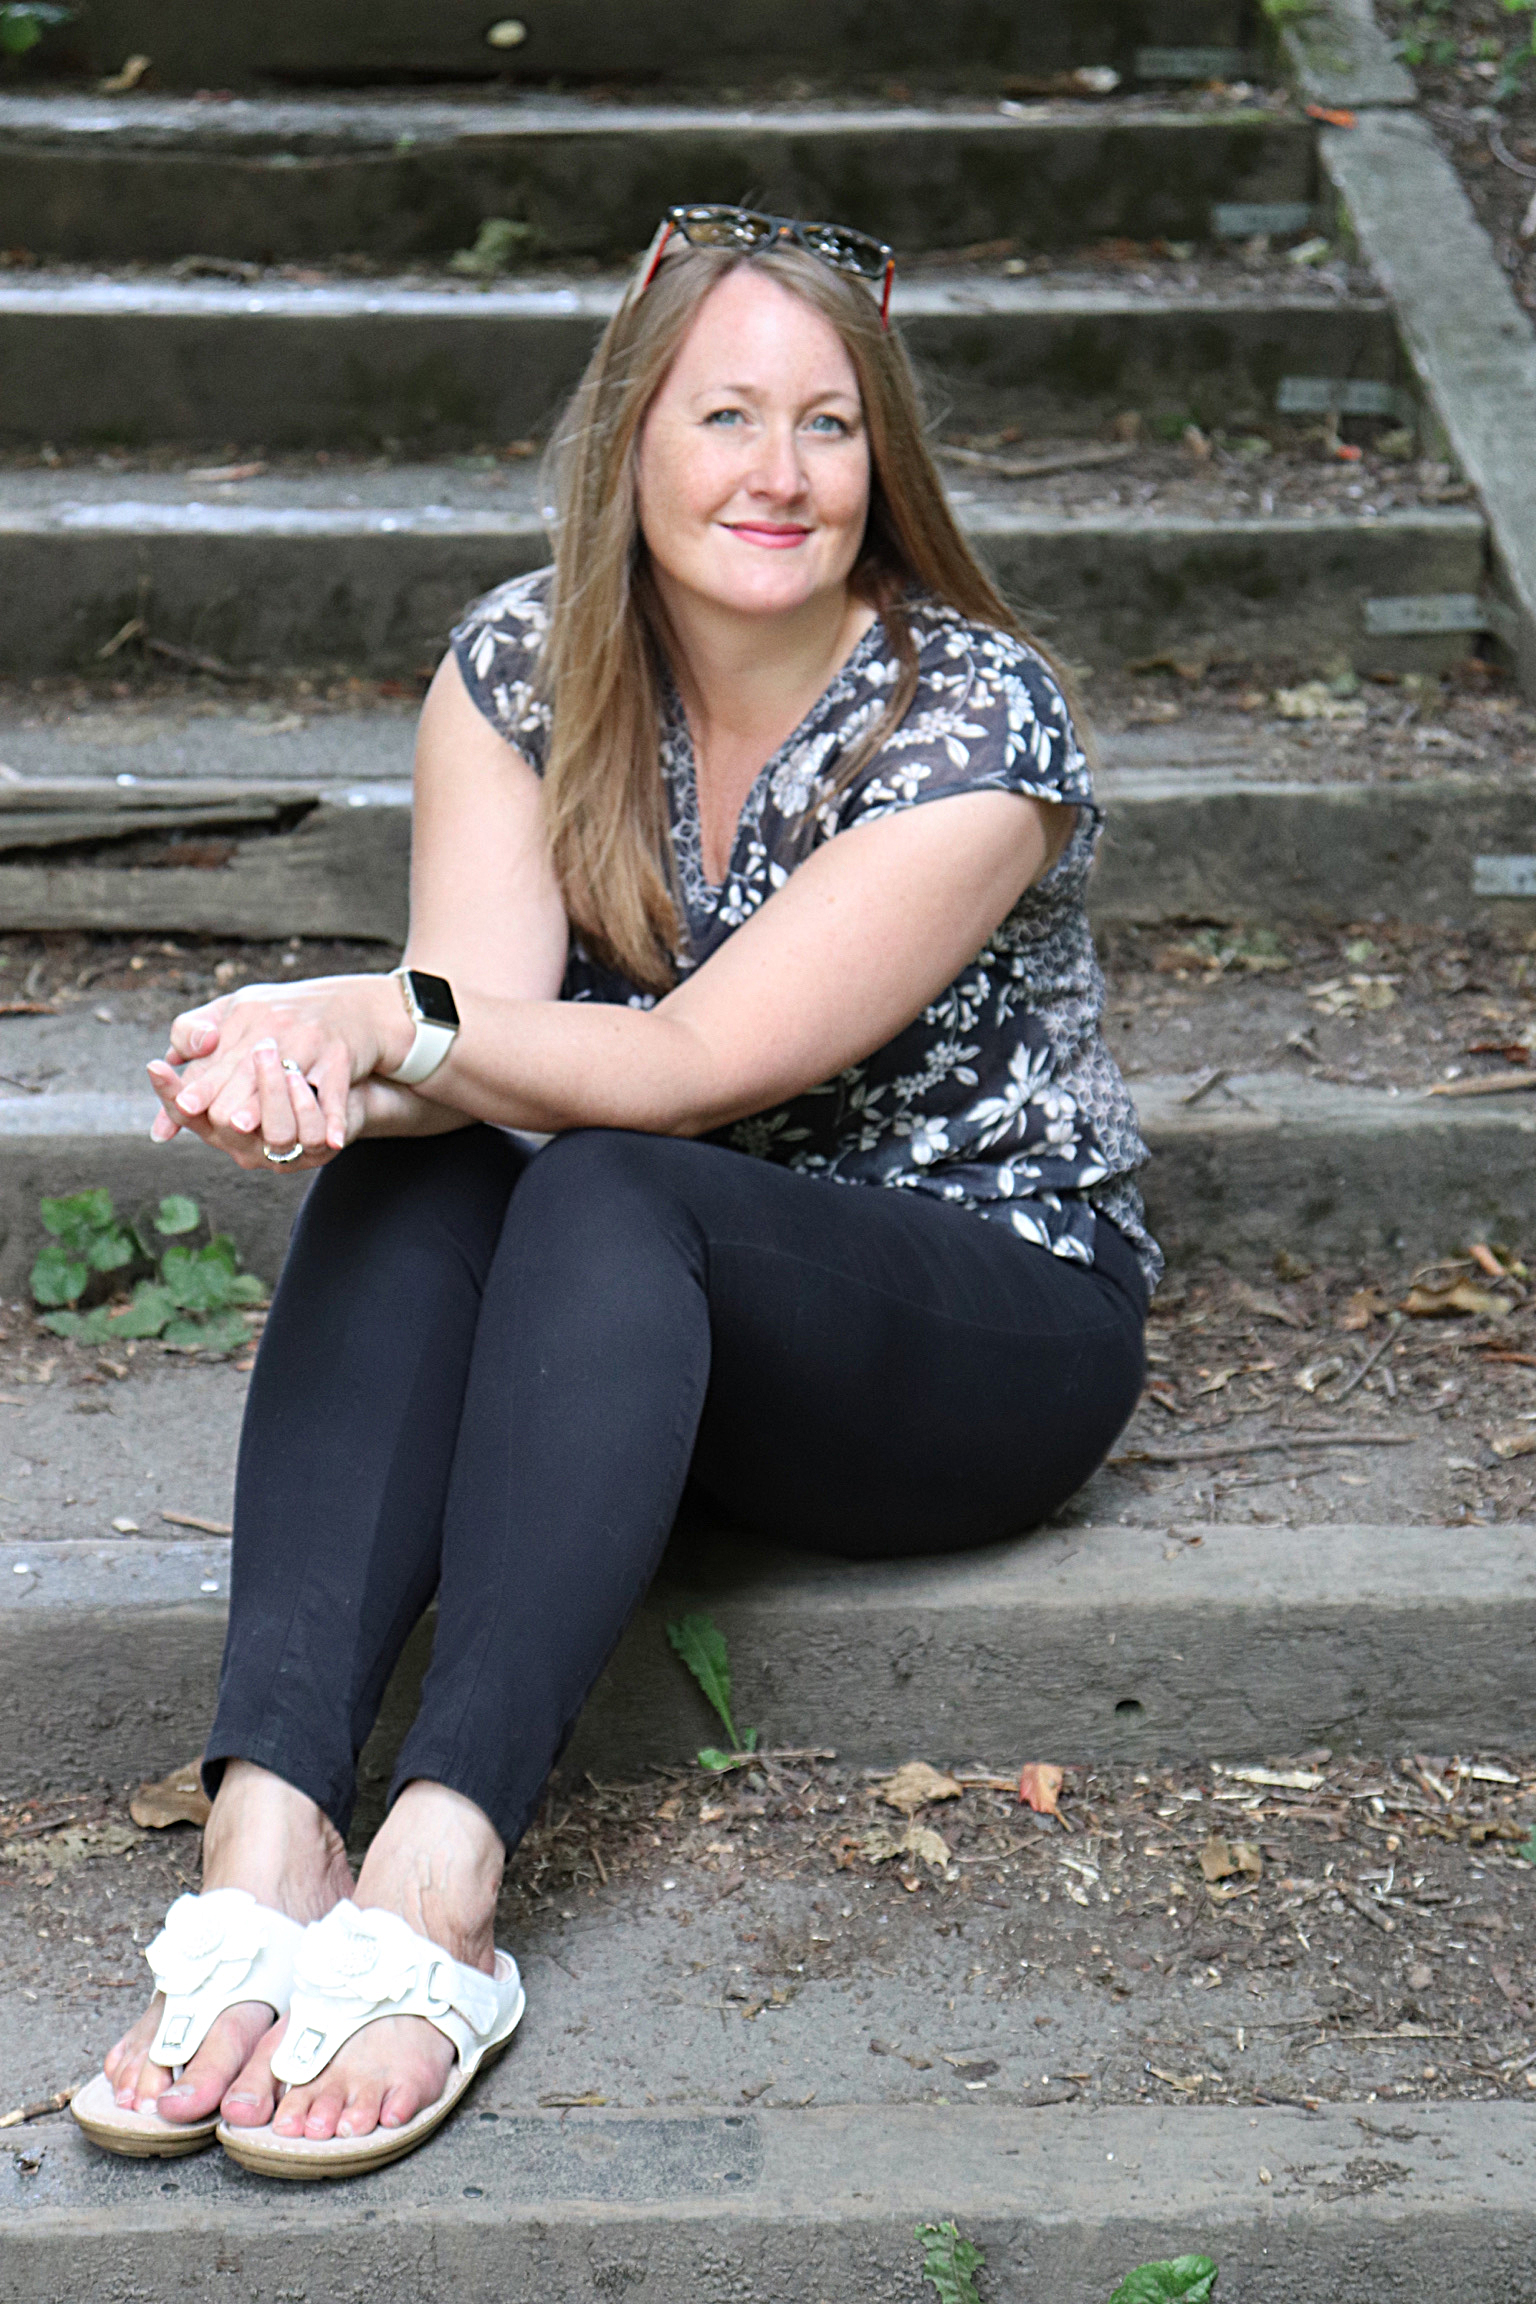 - Hi, I'm Fay!I'm a business coach and adviser and I'm here to help you grow your business with clarity and confidence.I've worked with business owners just like you for over 20 years.I know that you started your business for flexibility and satisfaction and to live your purpose. You have a fabulous business idea that your ideal clients should love.But you're frustrated becuase it now feels daunting and overwhelming - there's so much to do and you're just not sure if all these things you're doing are the right things.I do know how you feel, and I'd love to take you from this confusion to creating a clear direction to develop the business you've always had in mind.